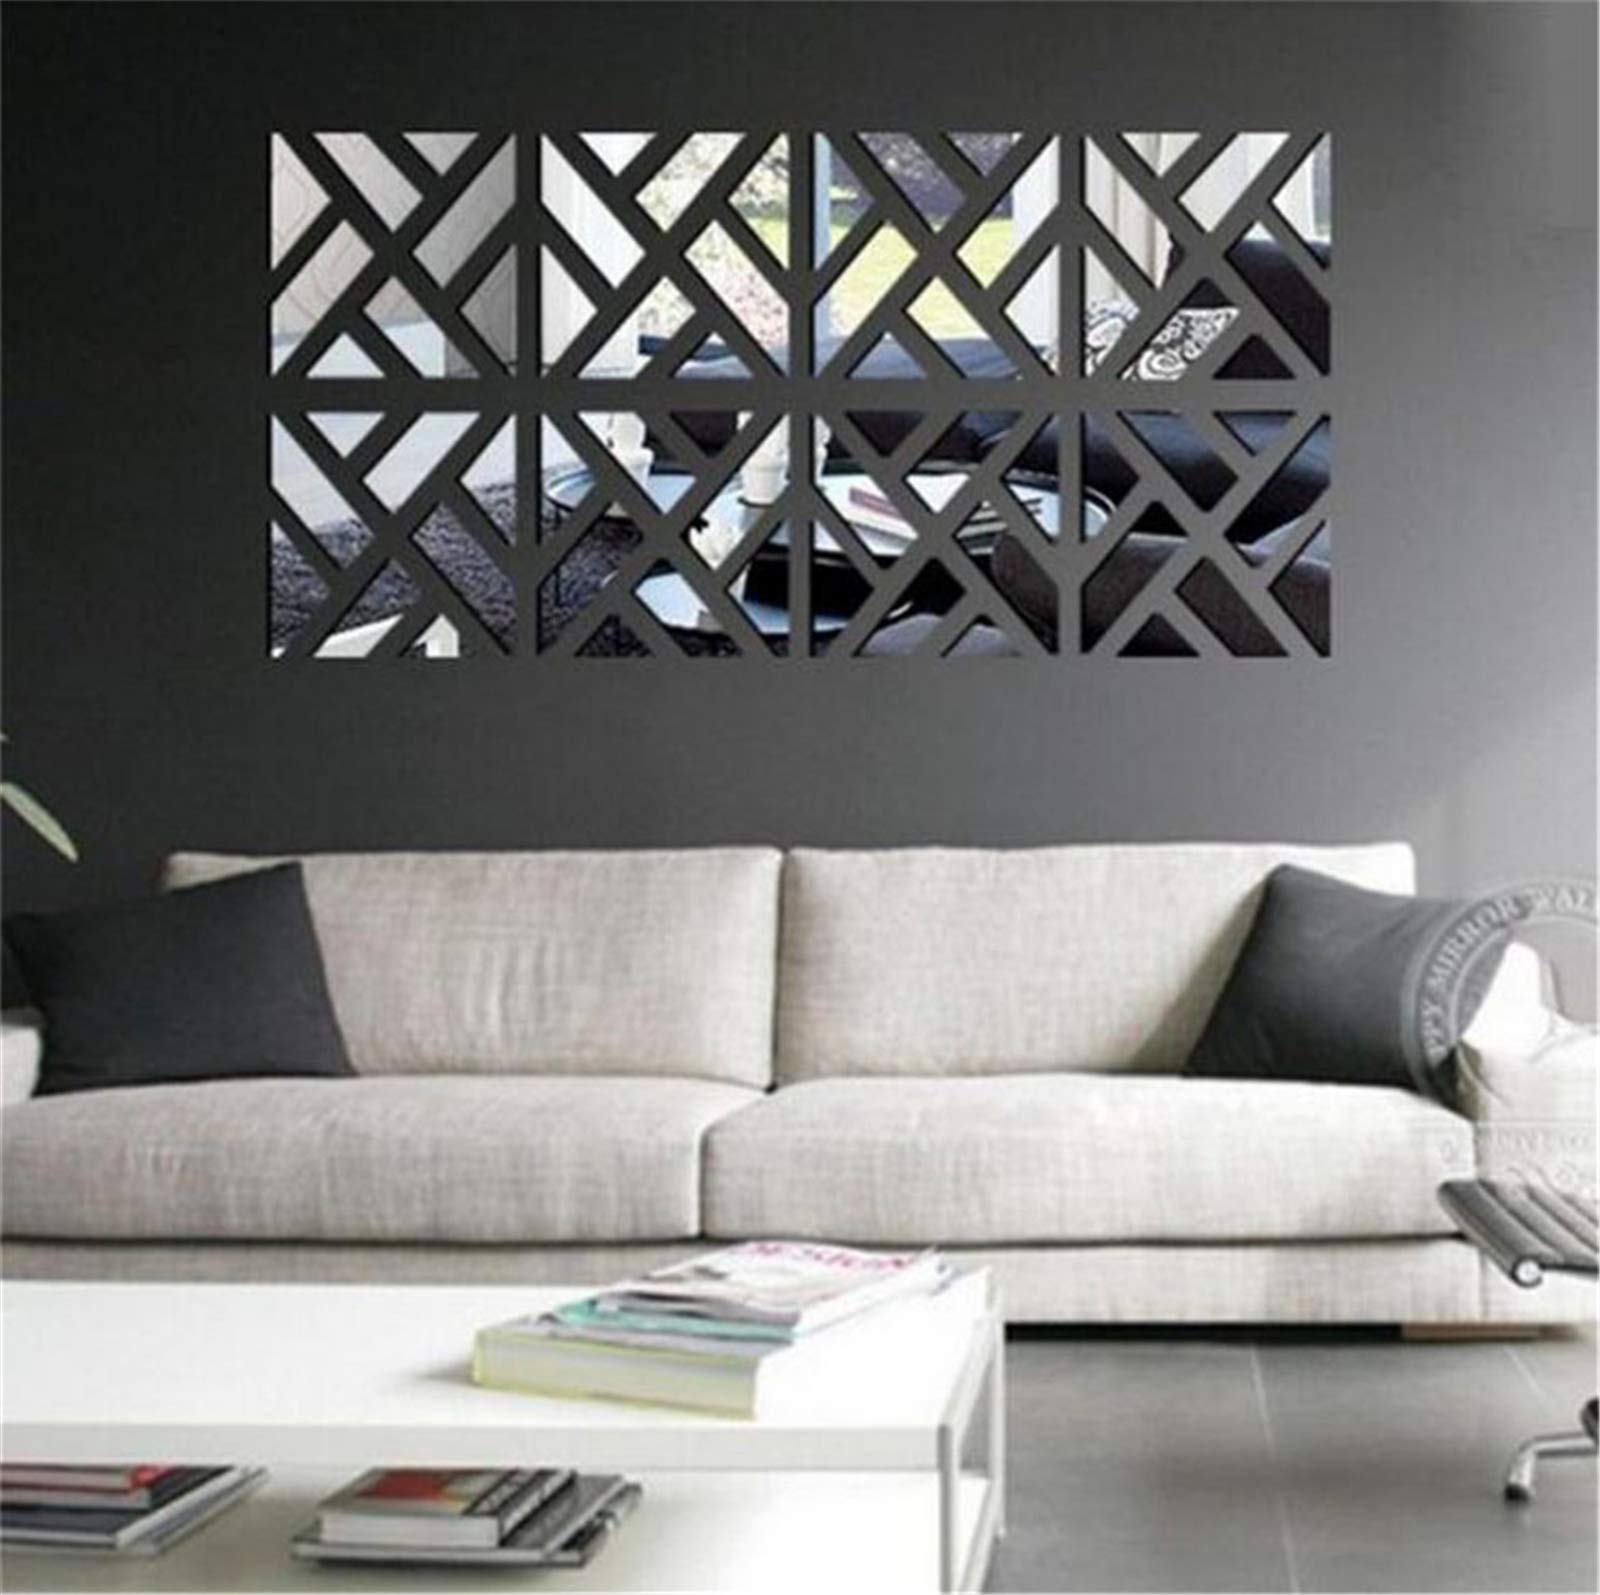 1 Sheet Mirror Tile Wall Sticker Square Self-Adhesive Bathroom Stick On Art Deco